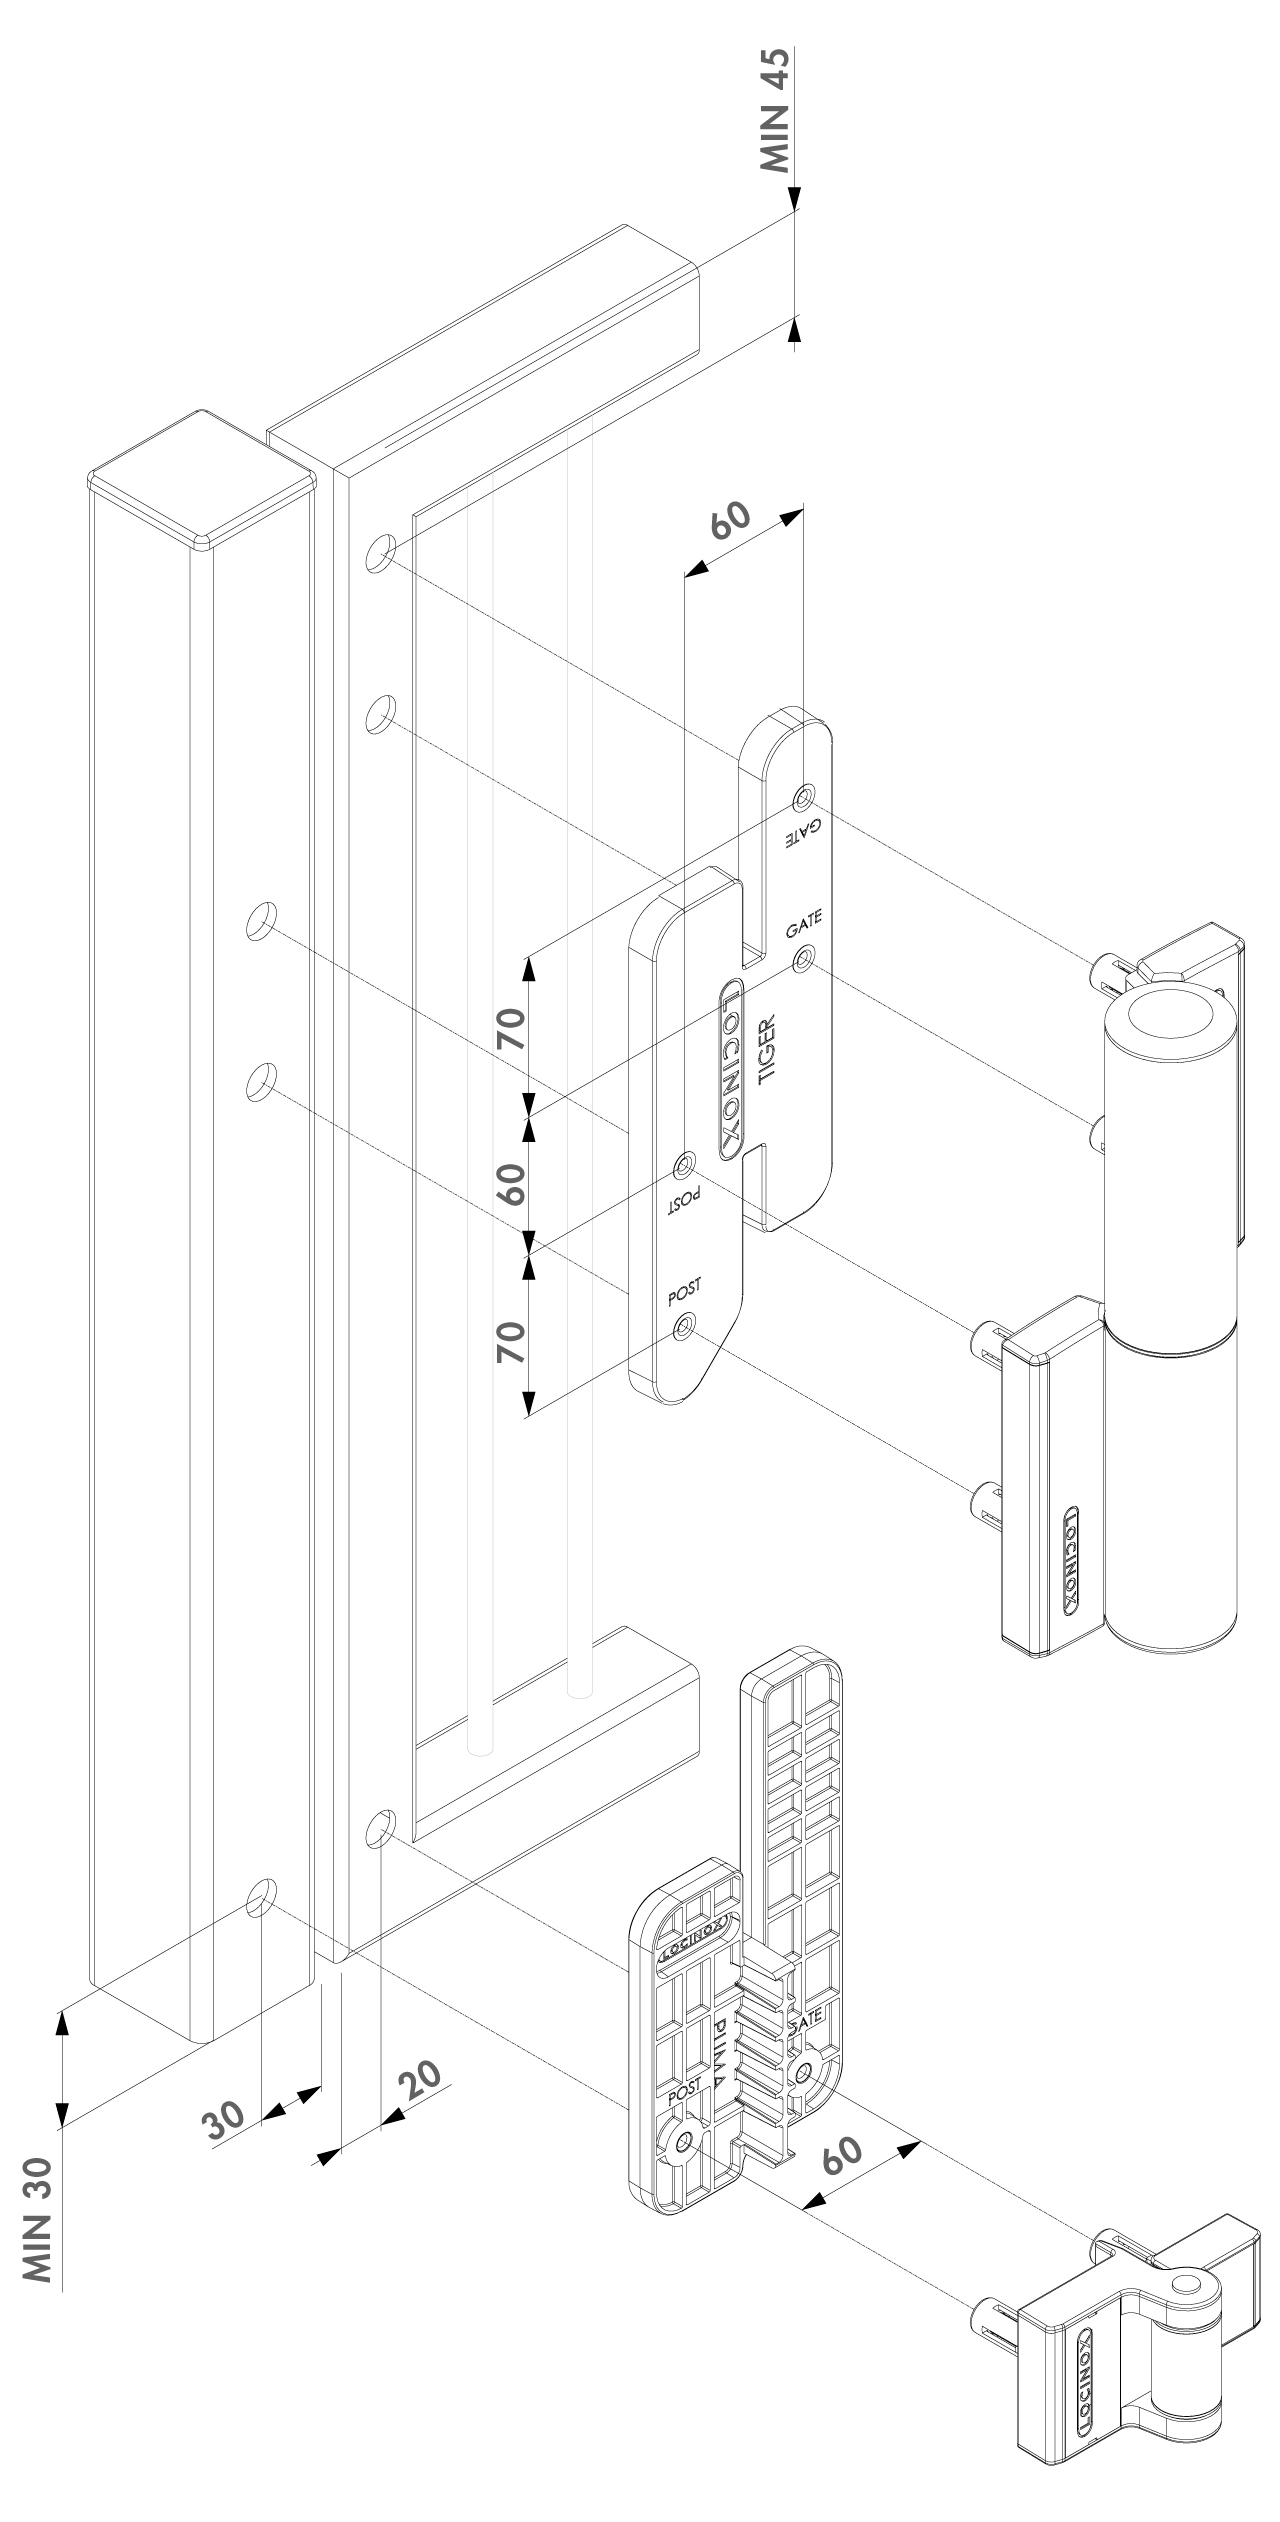 Locinox Jig for Tiger Gate Closers-Dimensions (PDF)